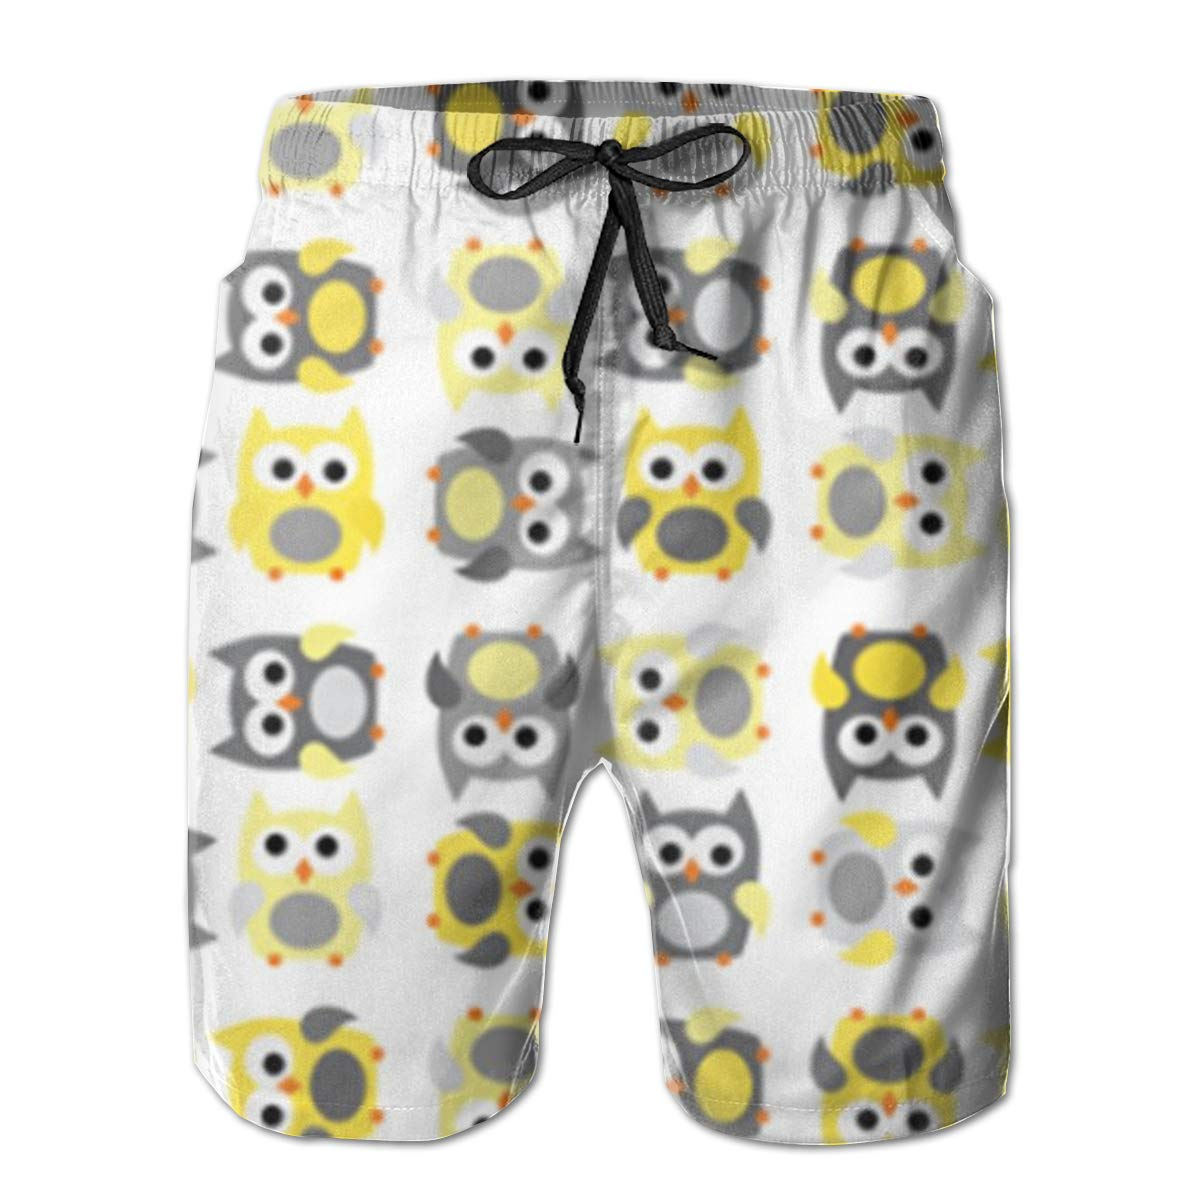 Mens Board Shorts Little Owls in Gray and Yellow Holiday Swim Trunks Mesh Lining